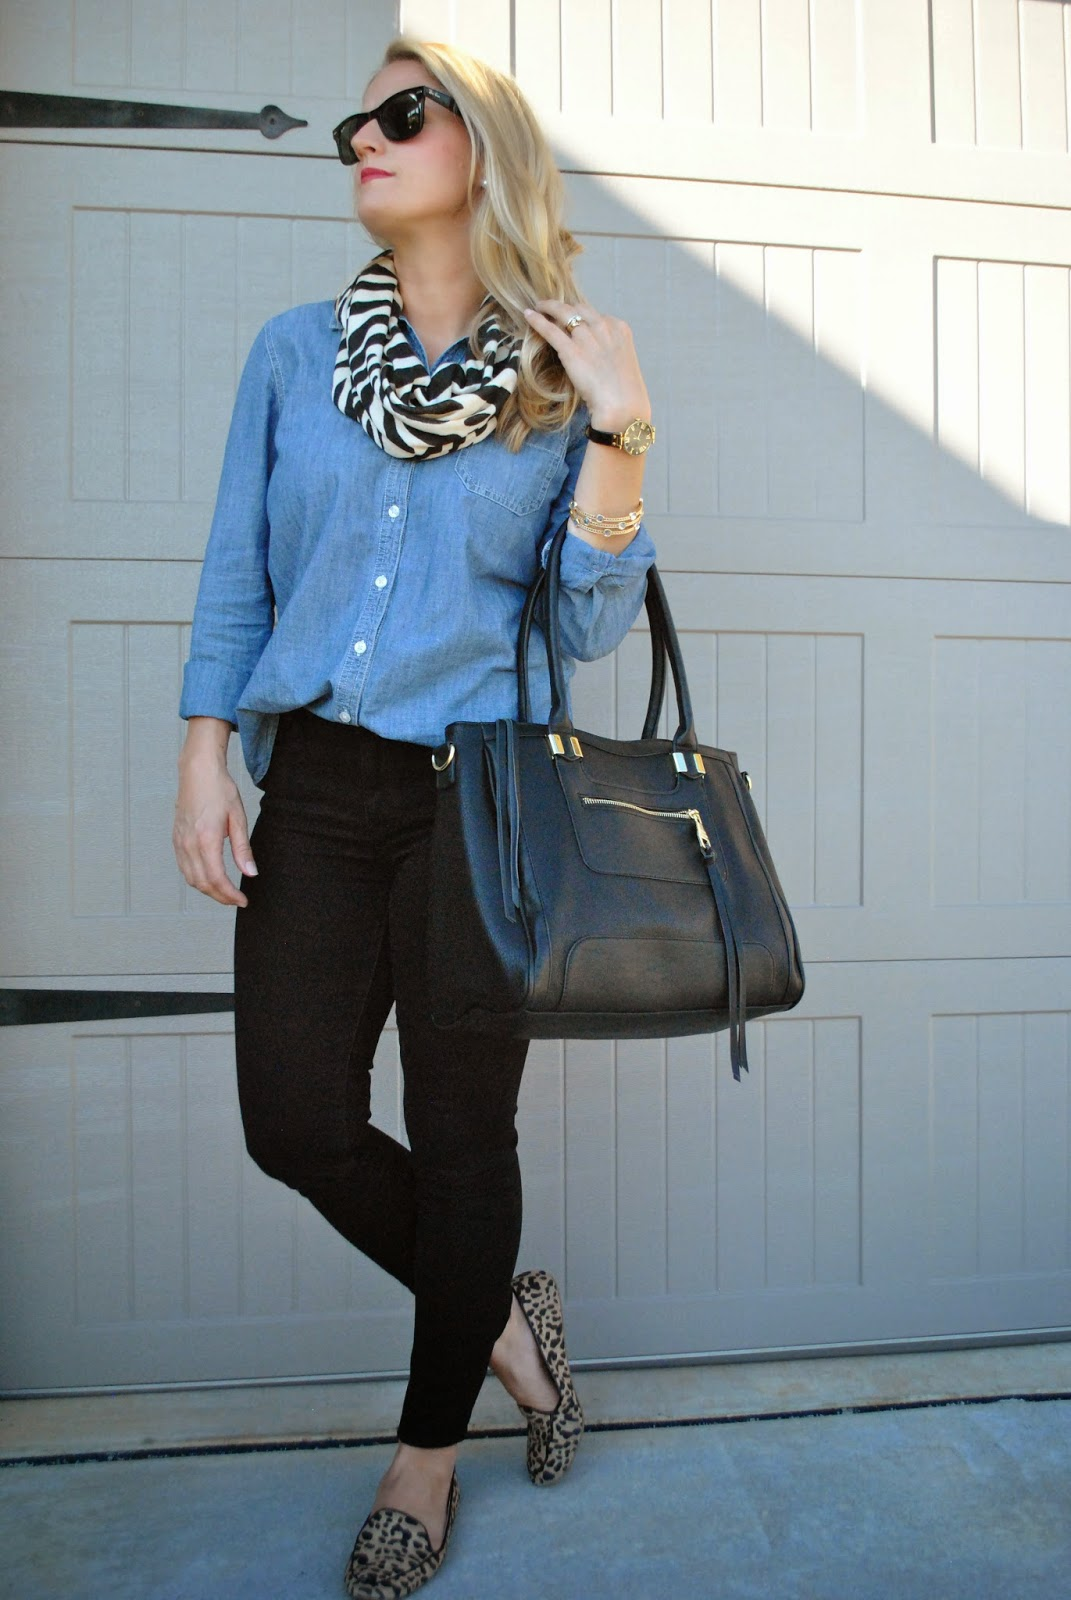 Chambray Black Skinnies Steve Madden Oversize Tote Leopard Flats Casual Chic